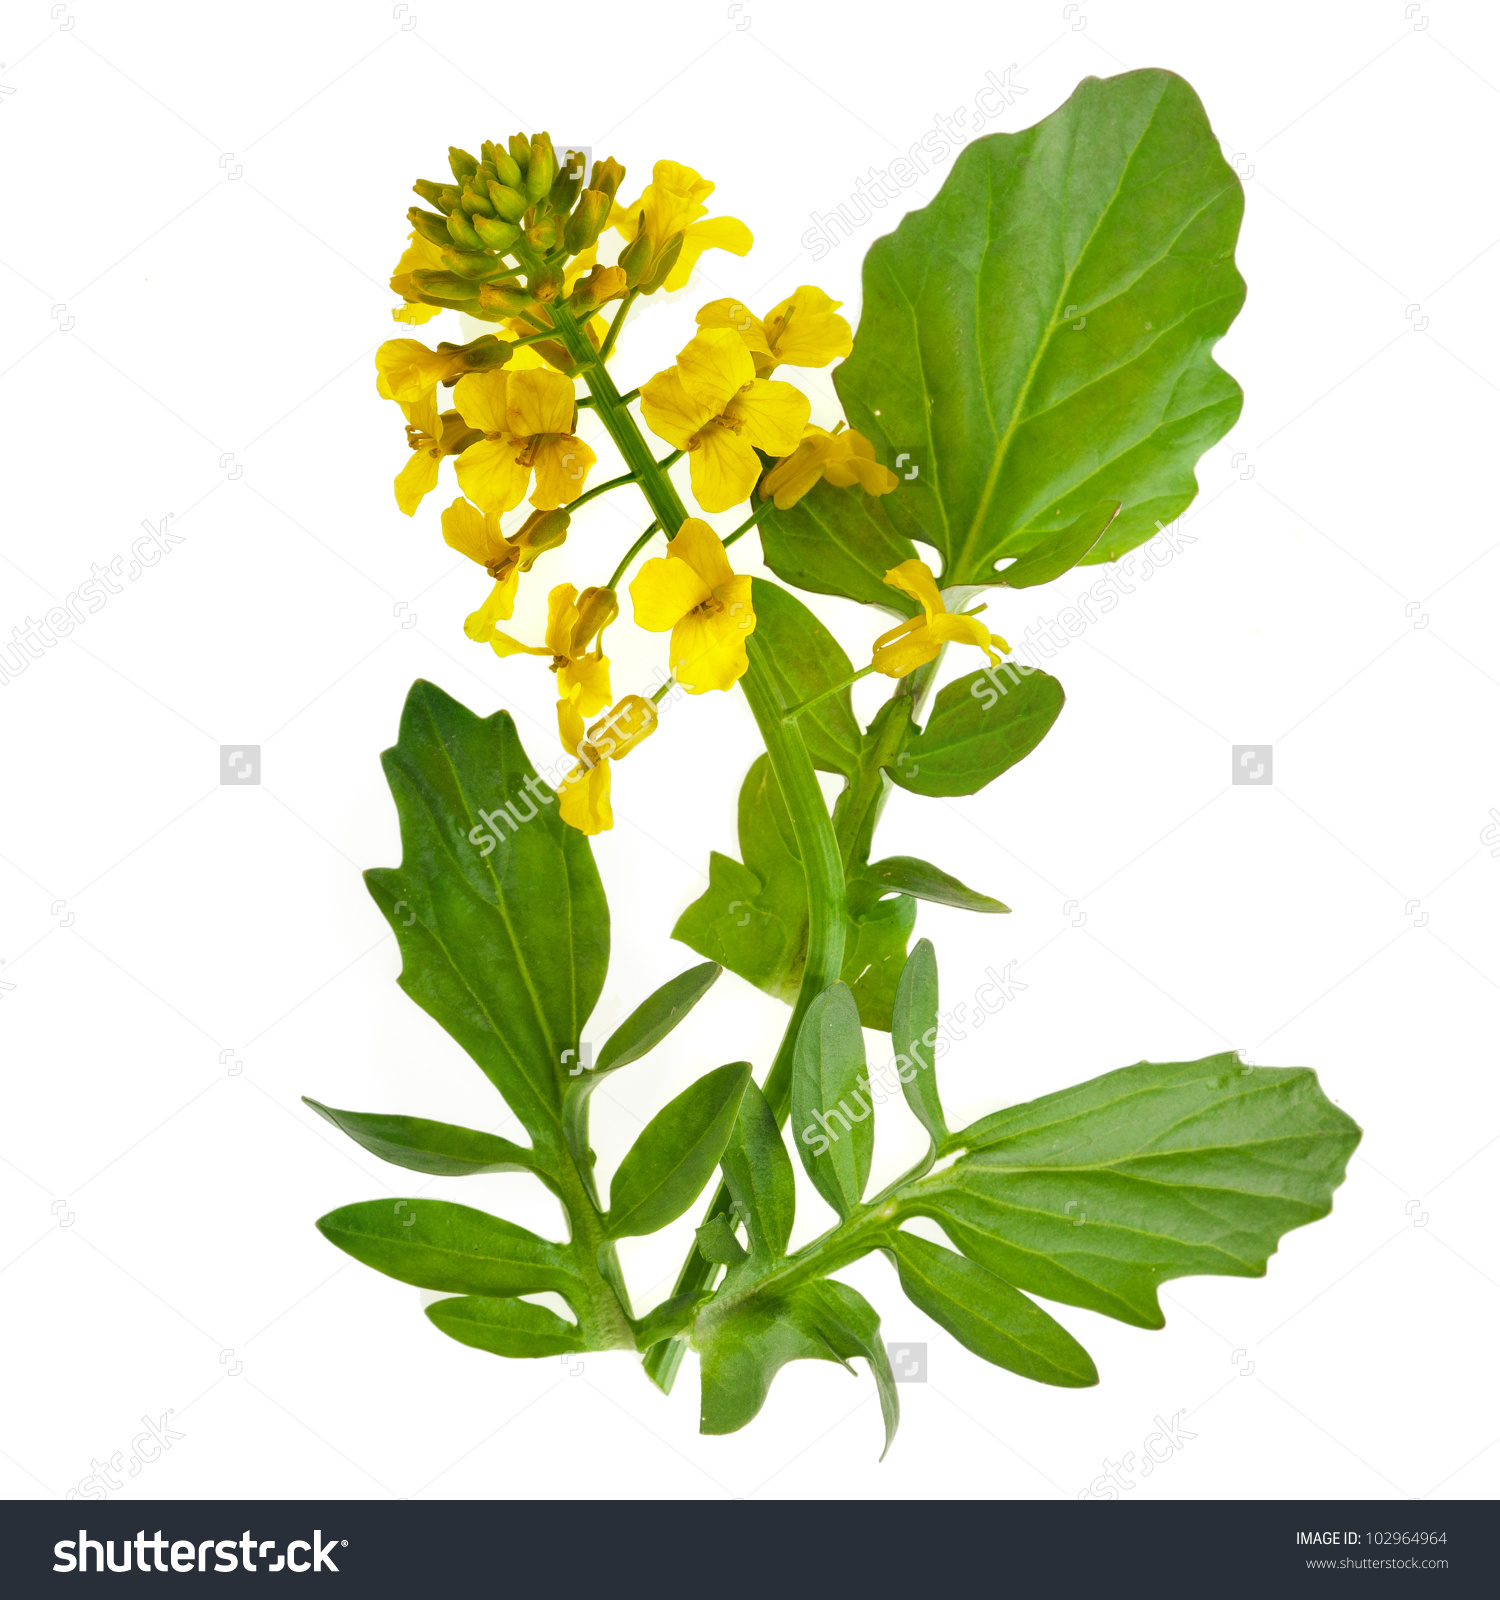 Flowering Barbarea Vulgaris Yellow Rocket Plant Stock Photo.